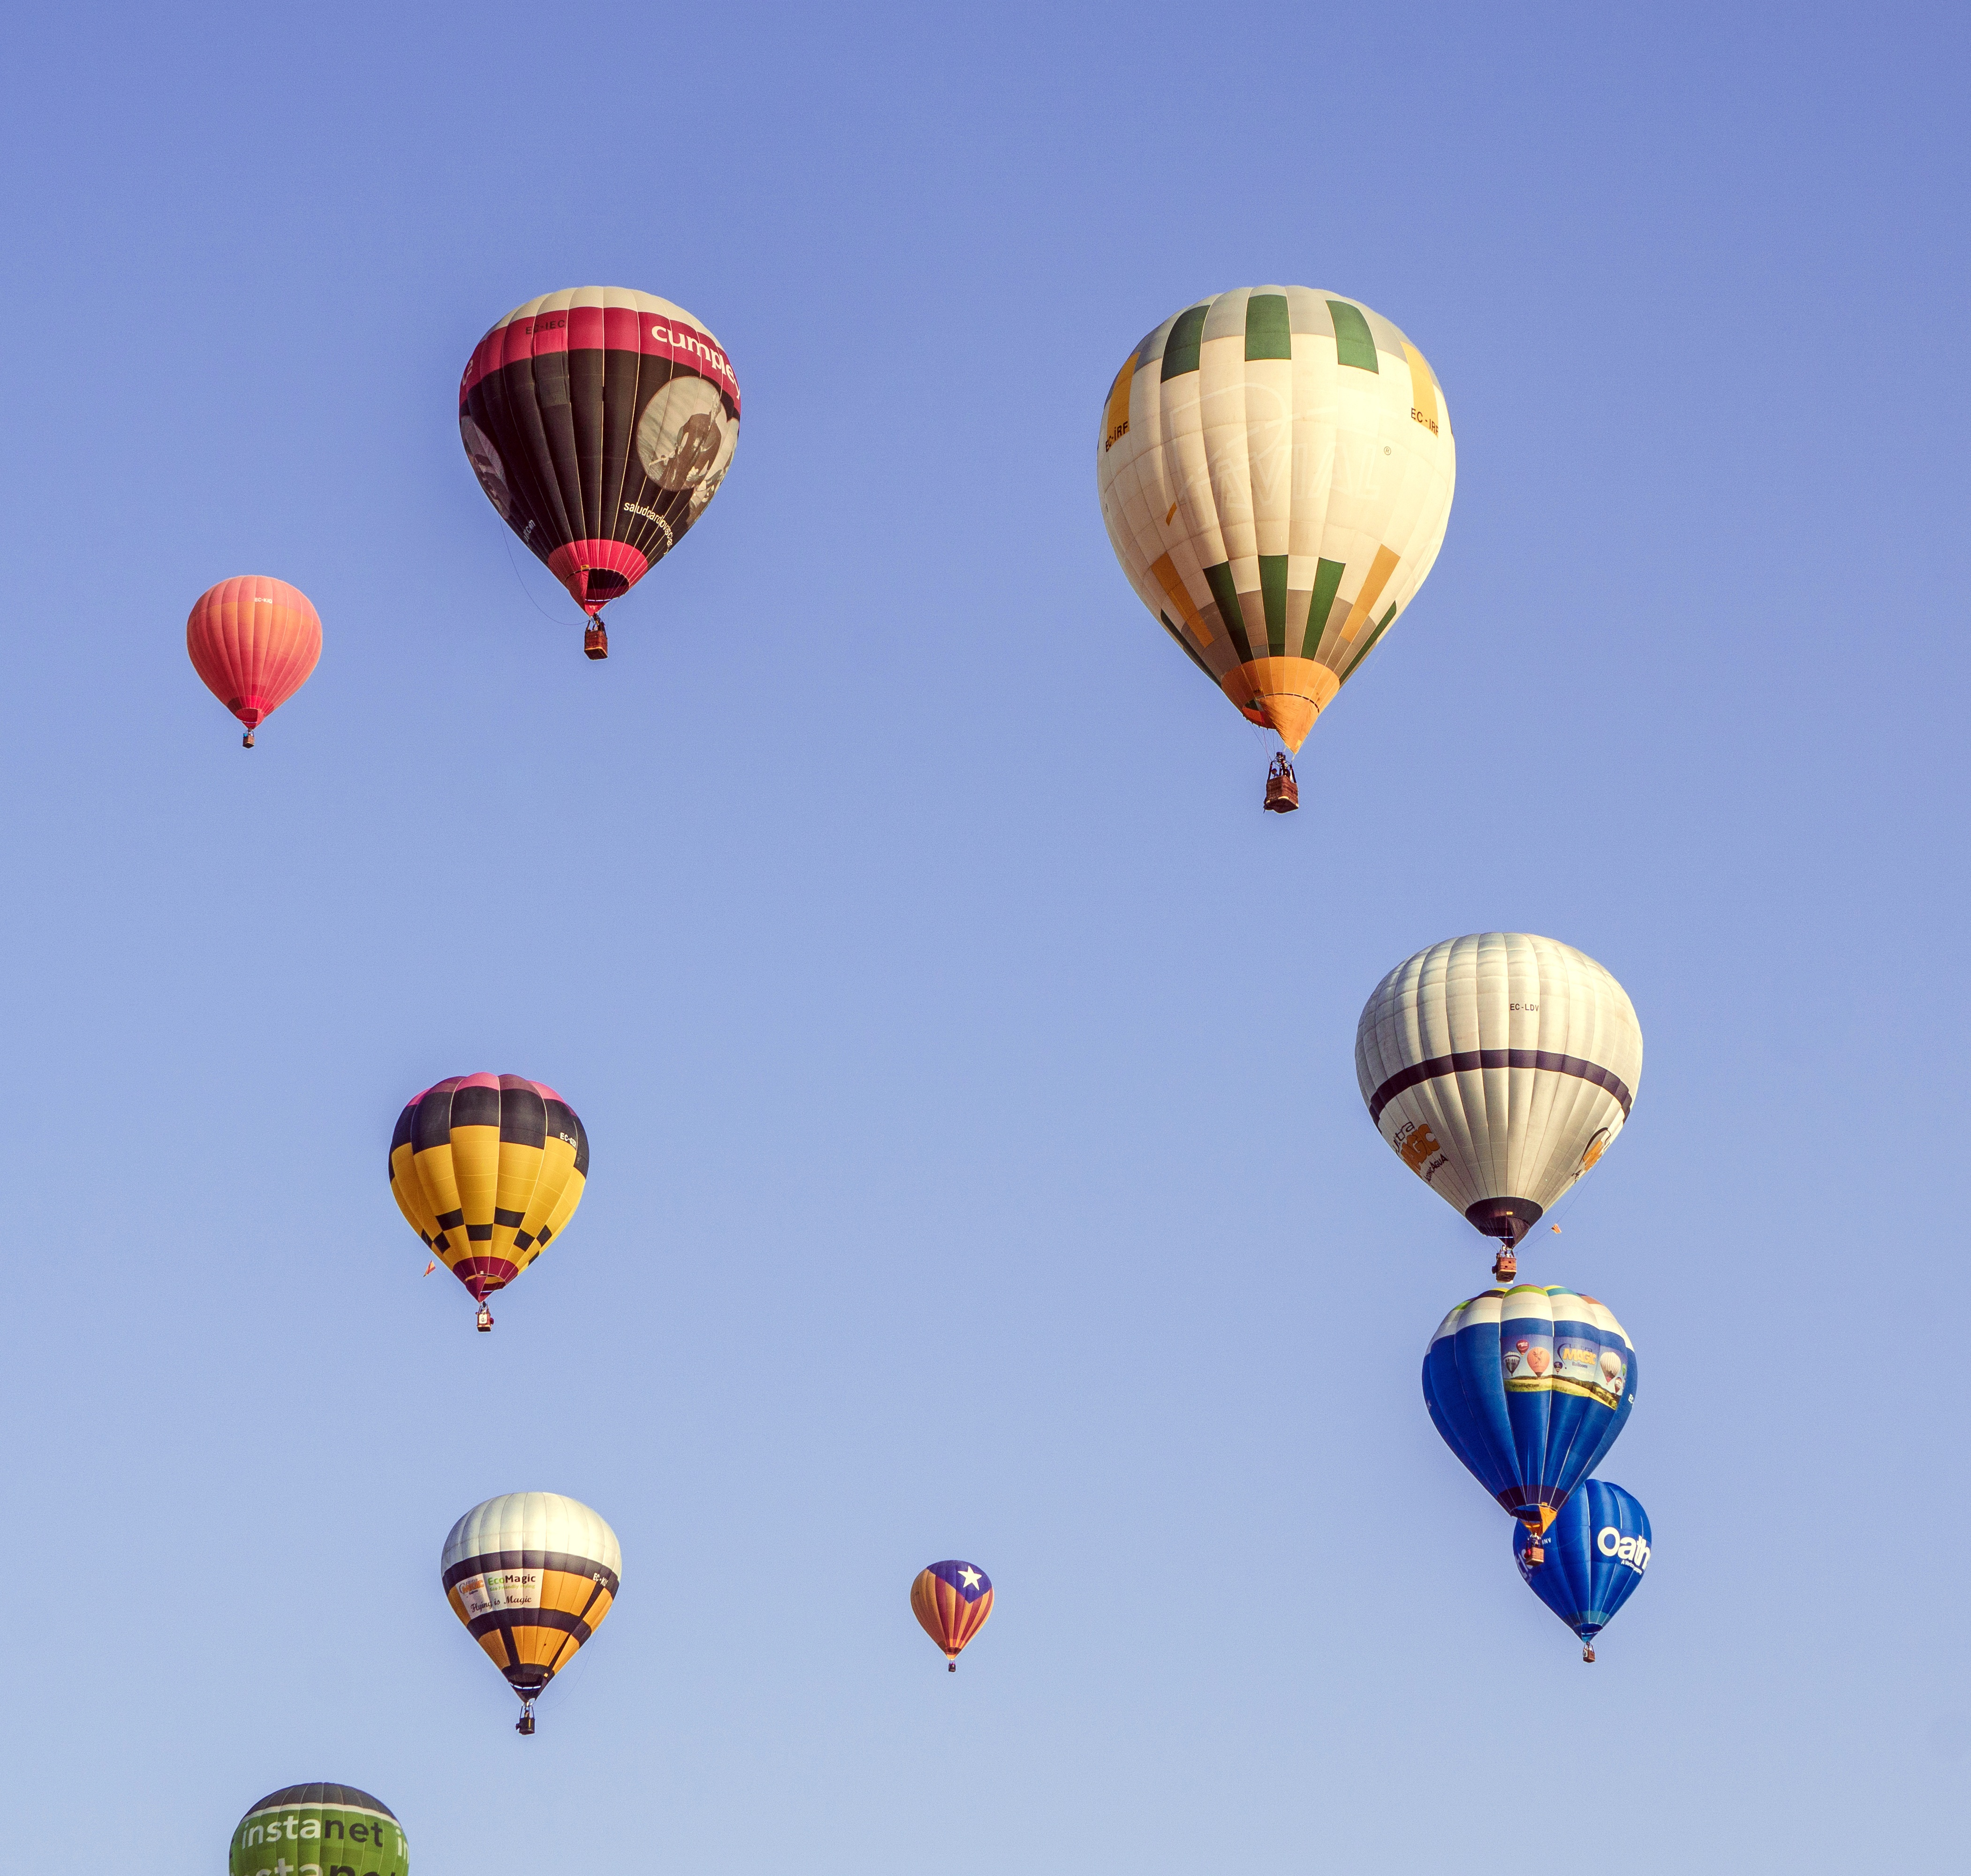 135463 Screensavers and Wallpapers Balloons for phone. Download Sky, Balloons, Miscellanea, Miscellaneous, Flight pictures for free